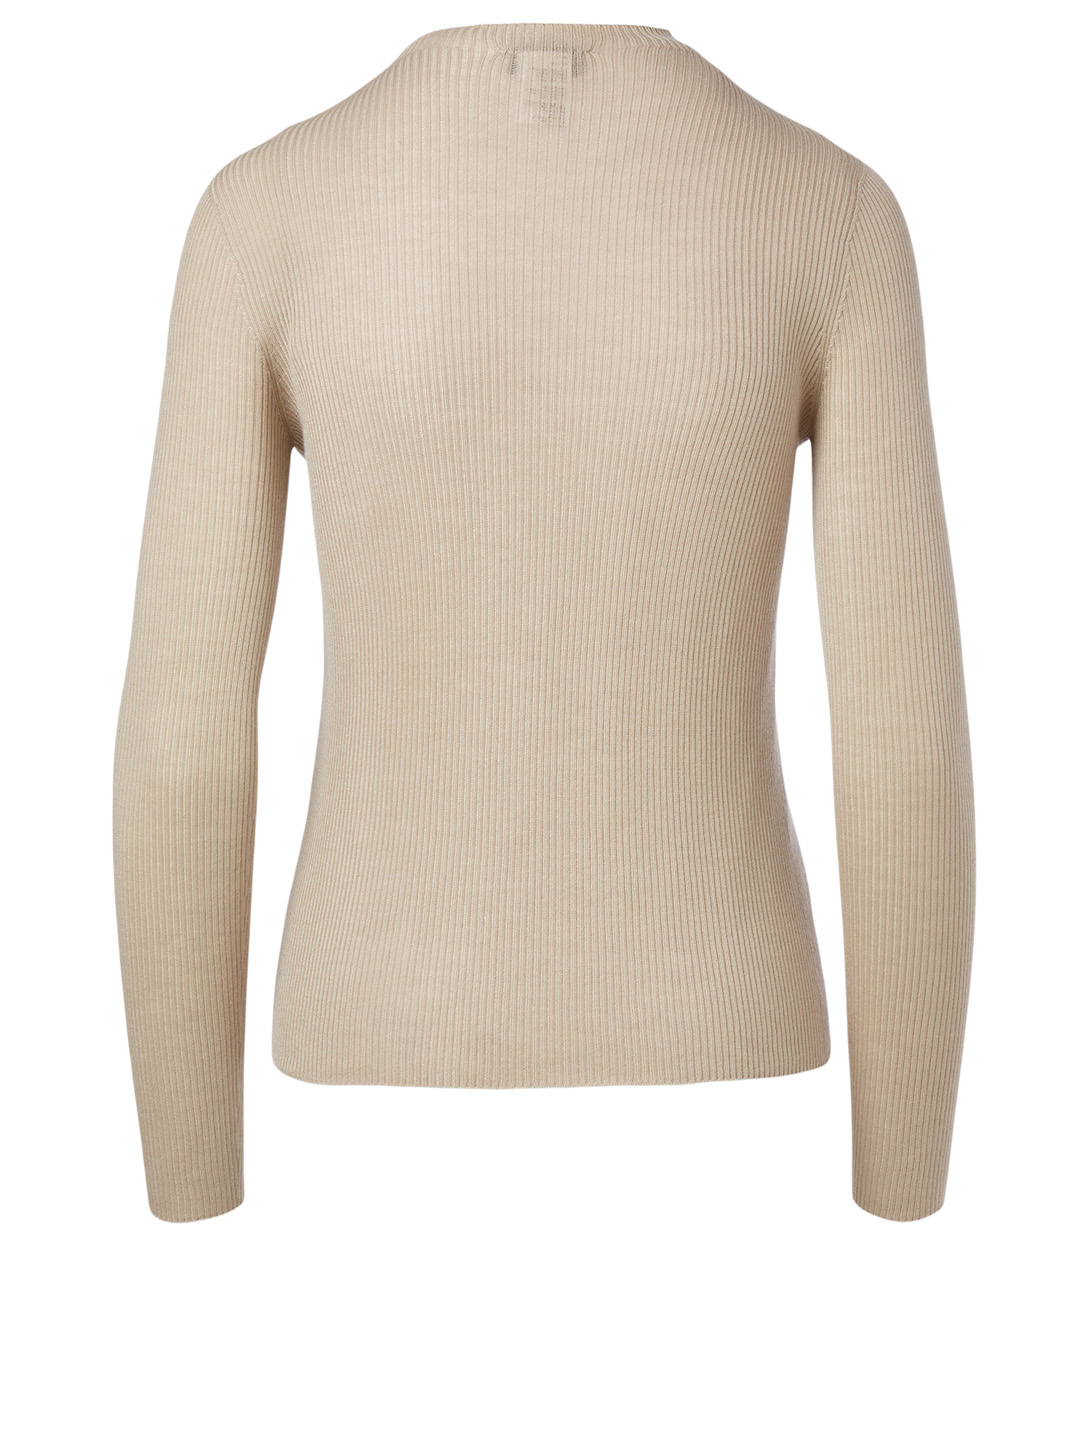 AKRIS Cashmere And Silk Sweater Women's Beige